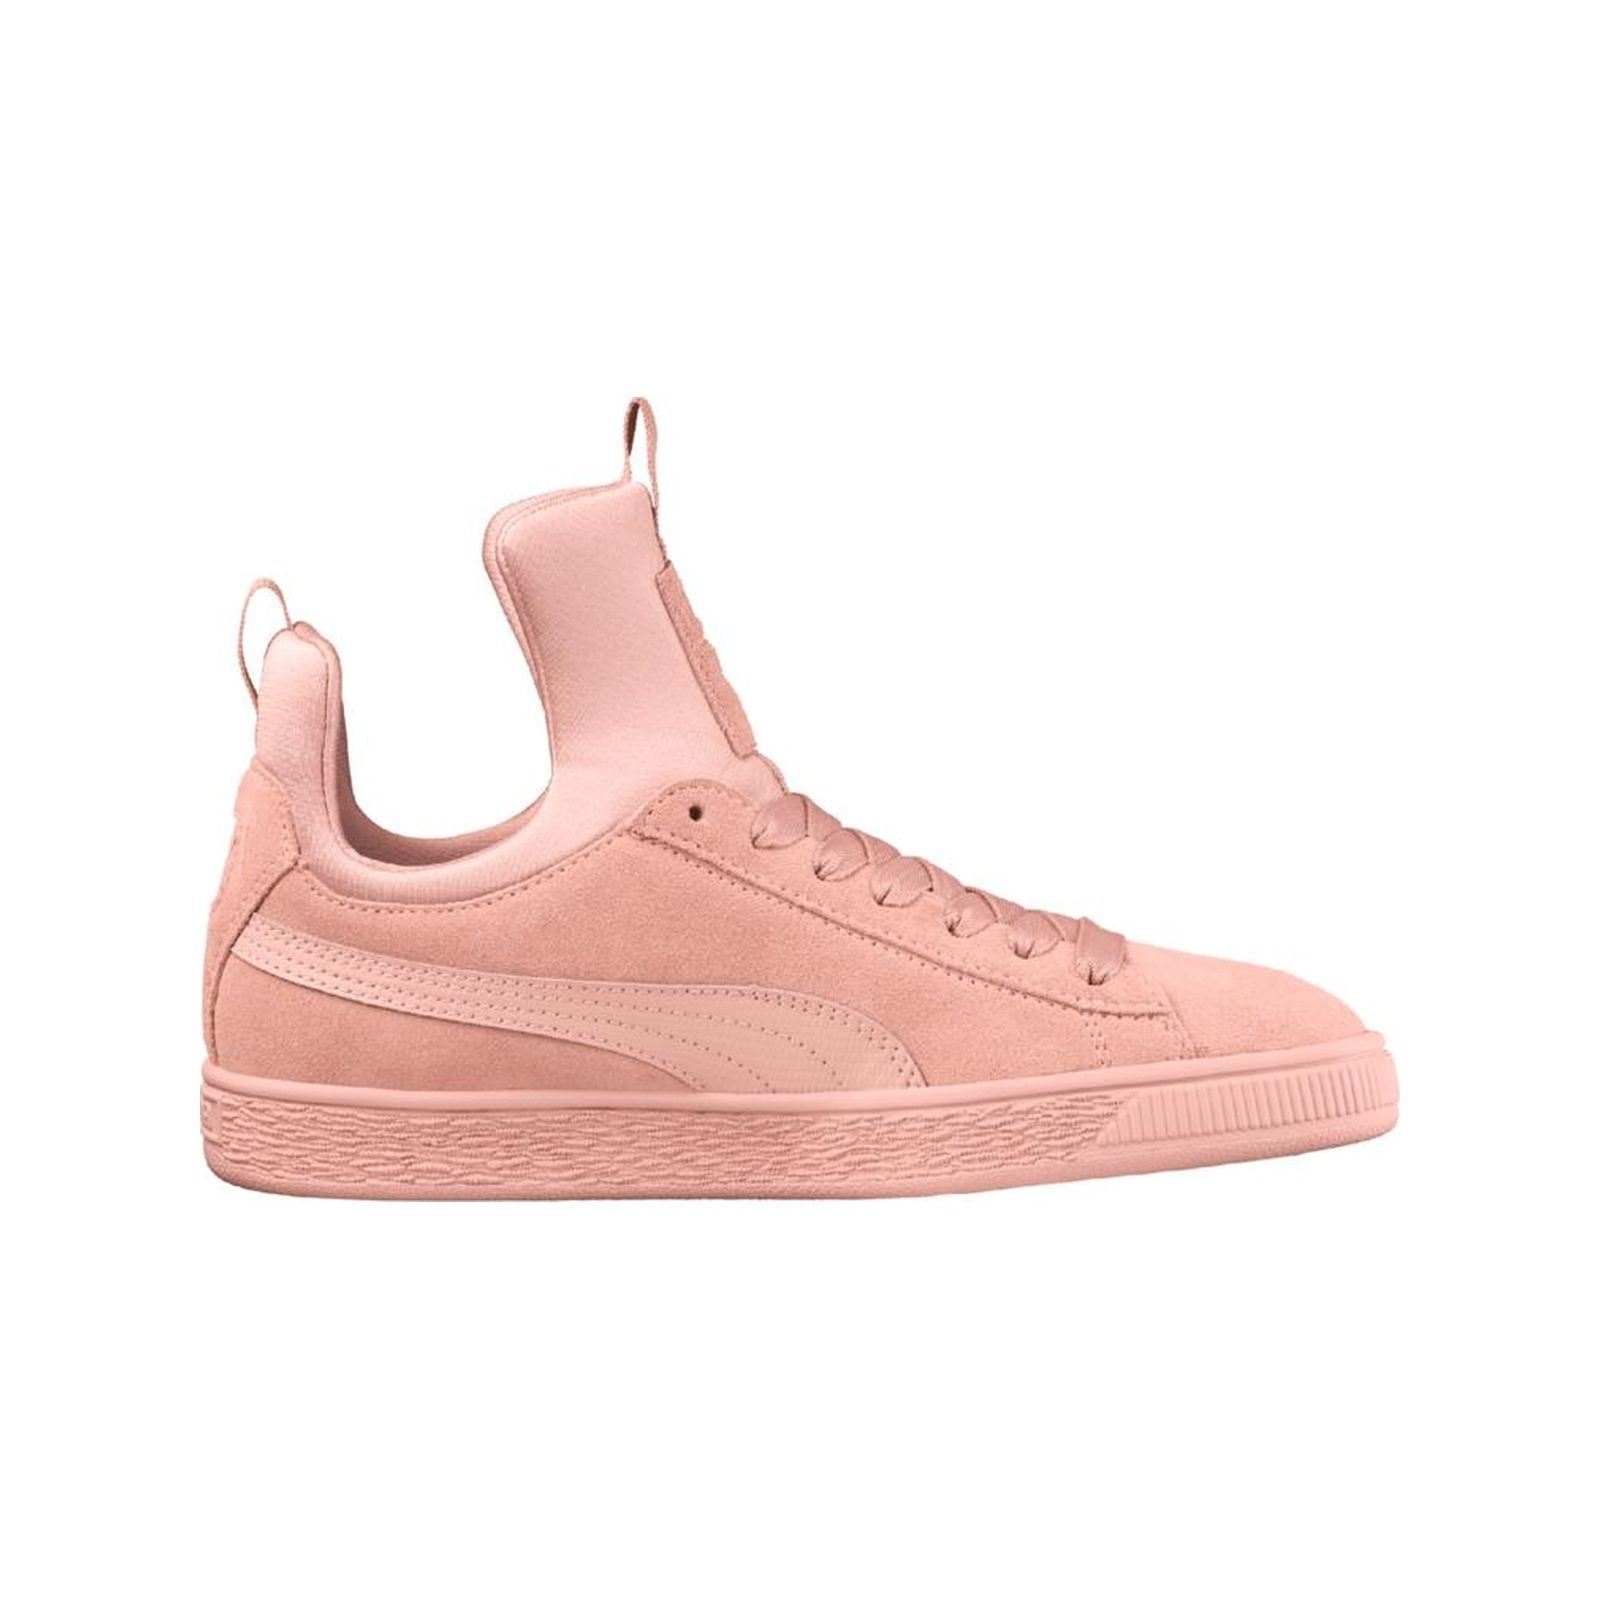 2062fe03af4 Puma Suede Fierce - Baskets montantesen cuir - rose